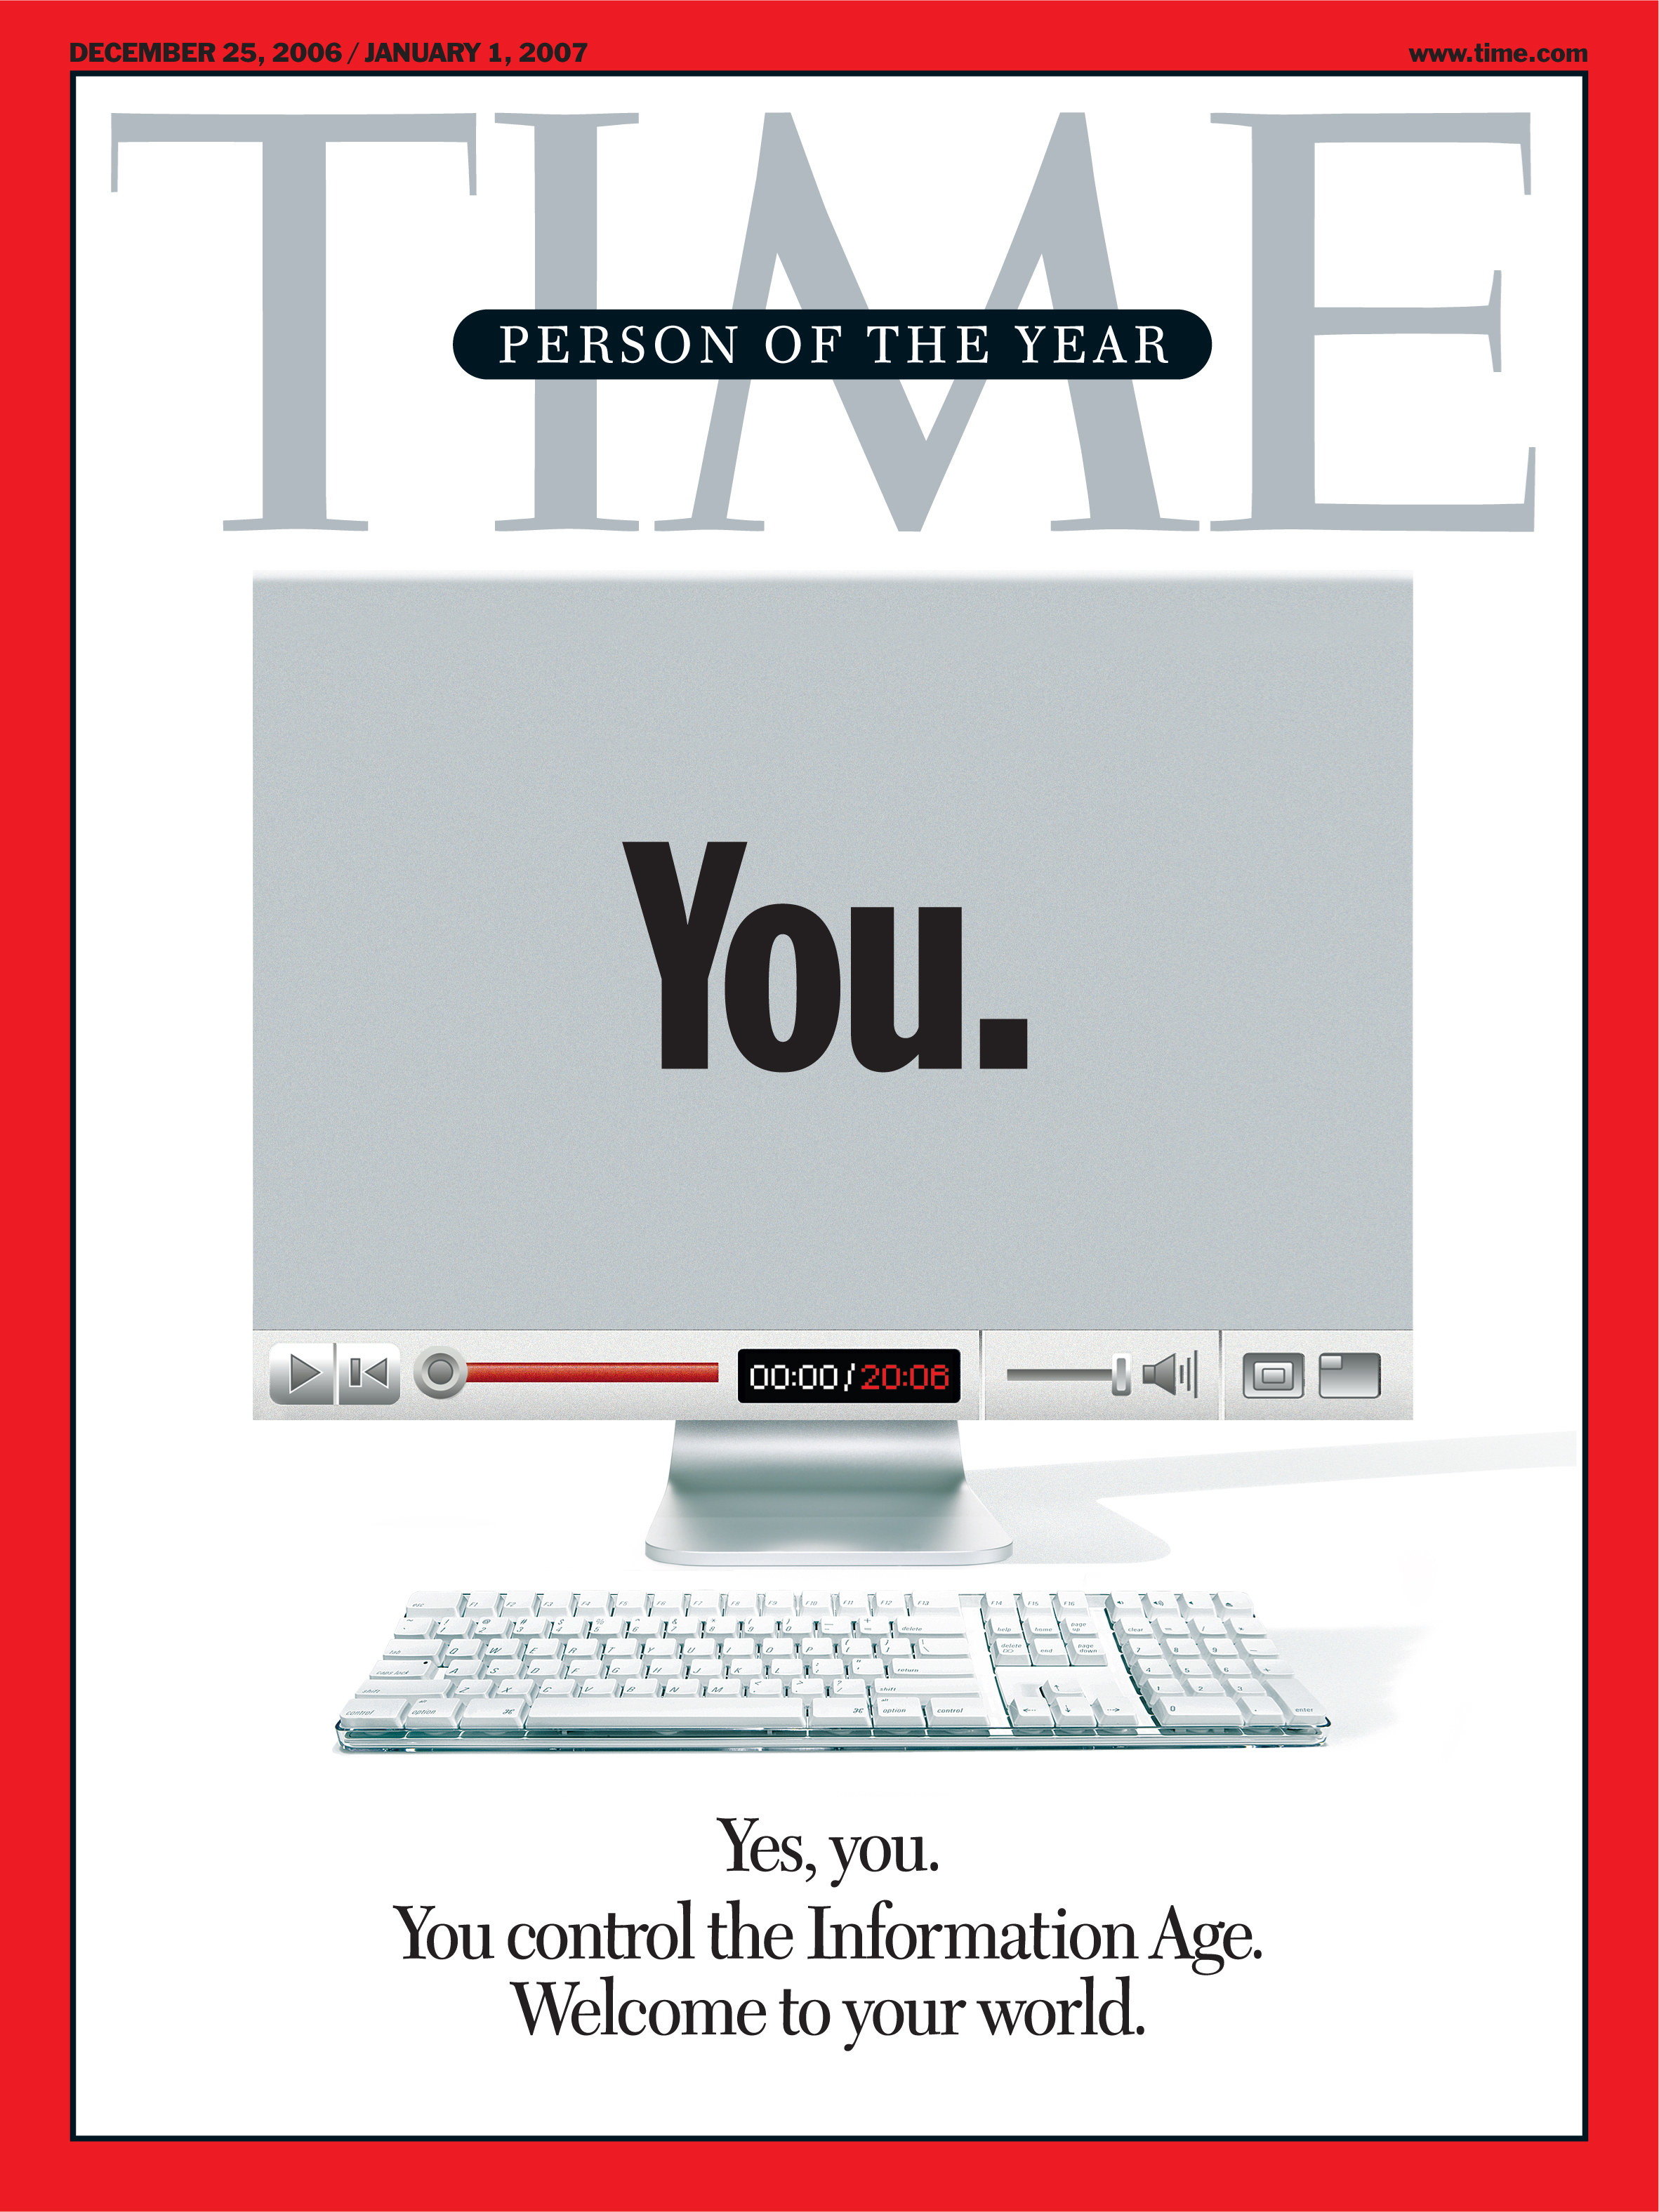 """The cover of TIME magazine from 2006 naming """"You"""" as person of the year"""